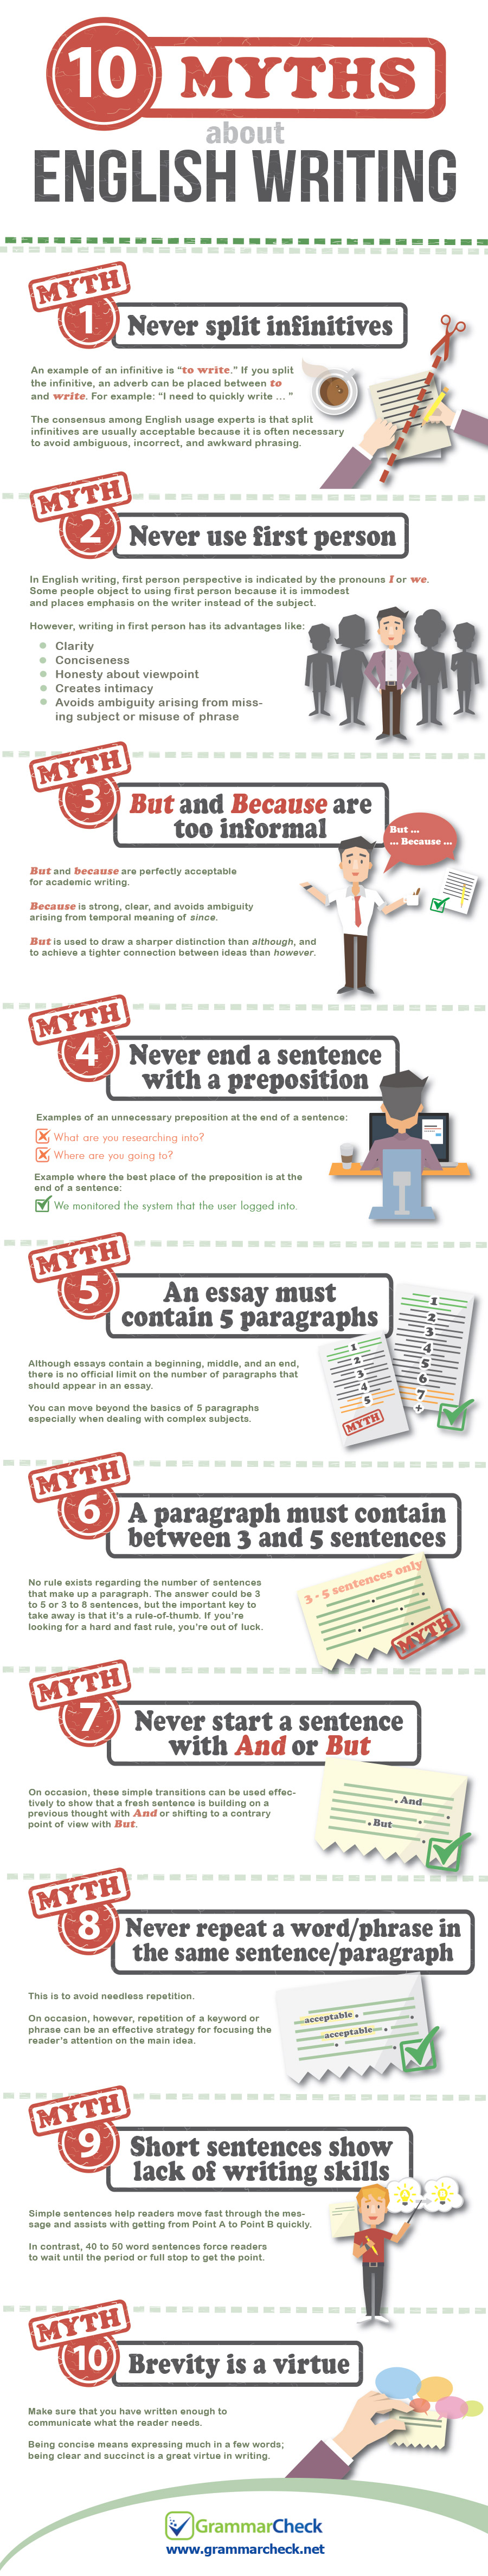 10 Myths about English Writing (Infographic)